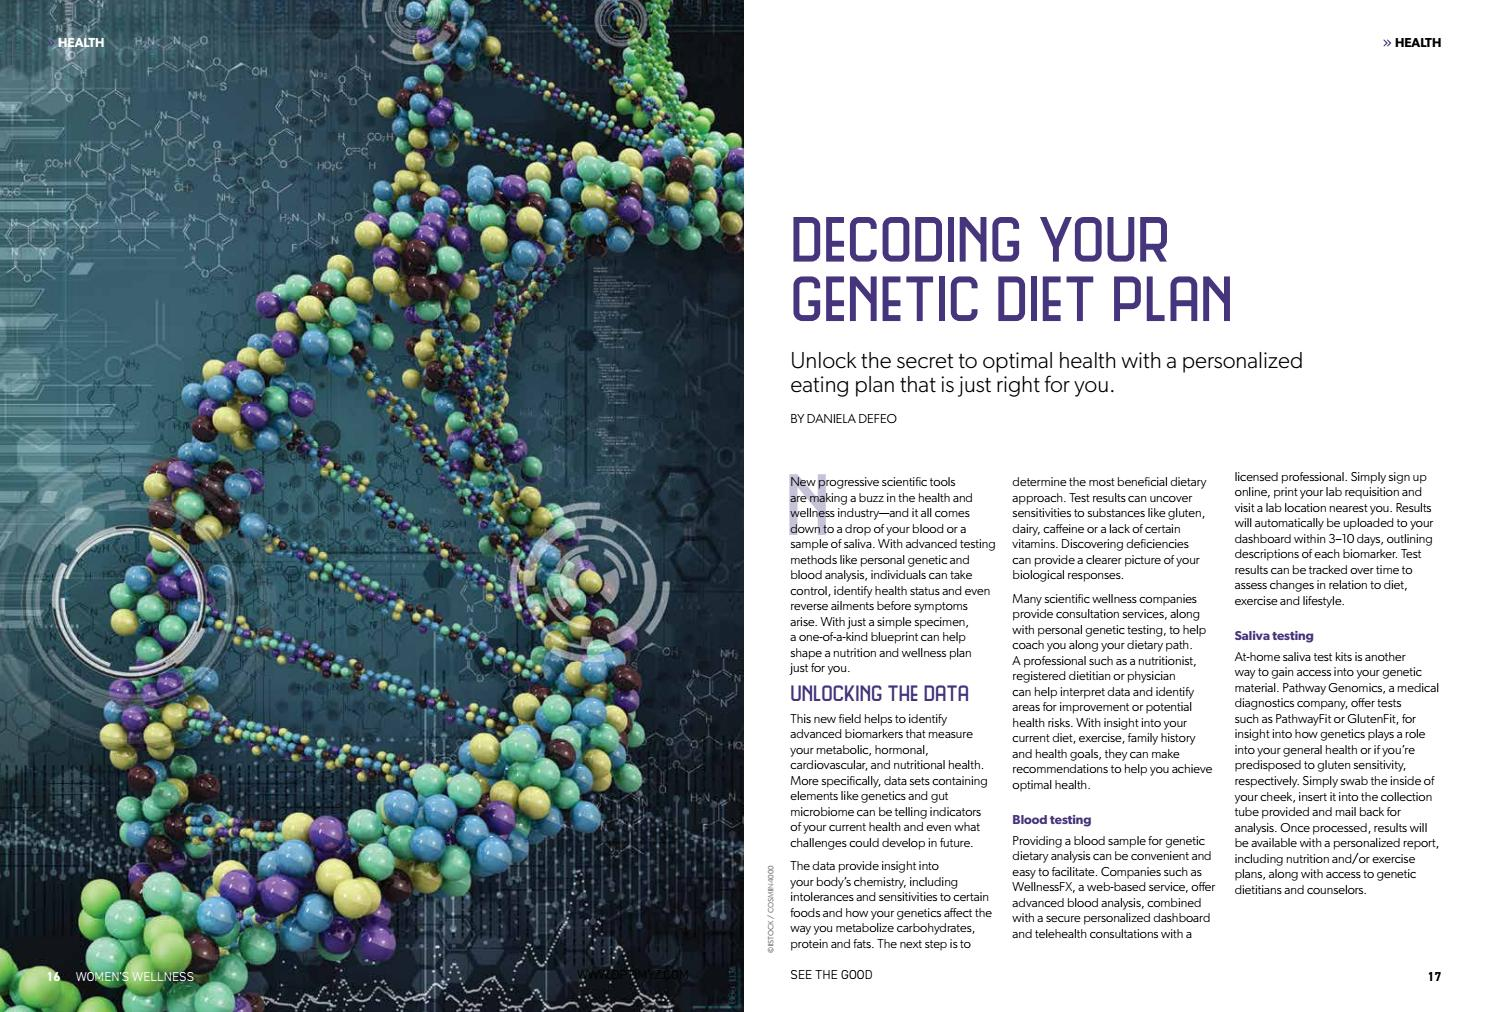 Decoding Your Genetic Diet Plan By Daniela Deevitareflections Issuu